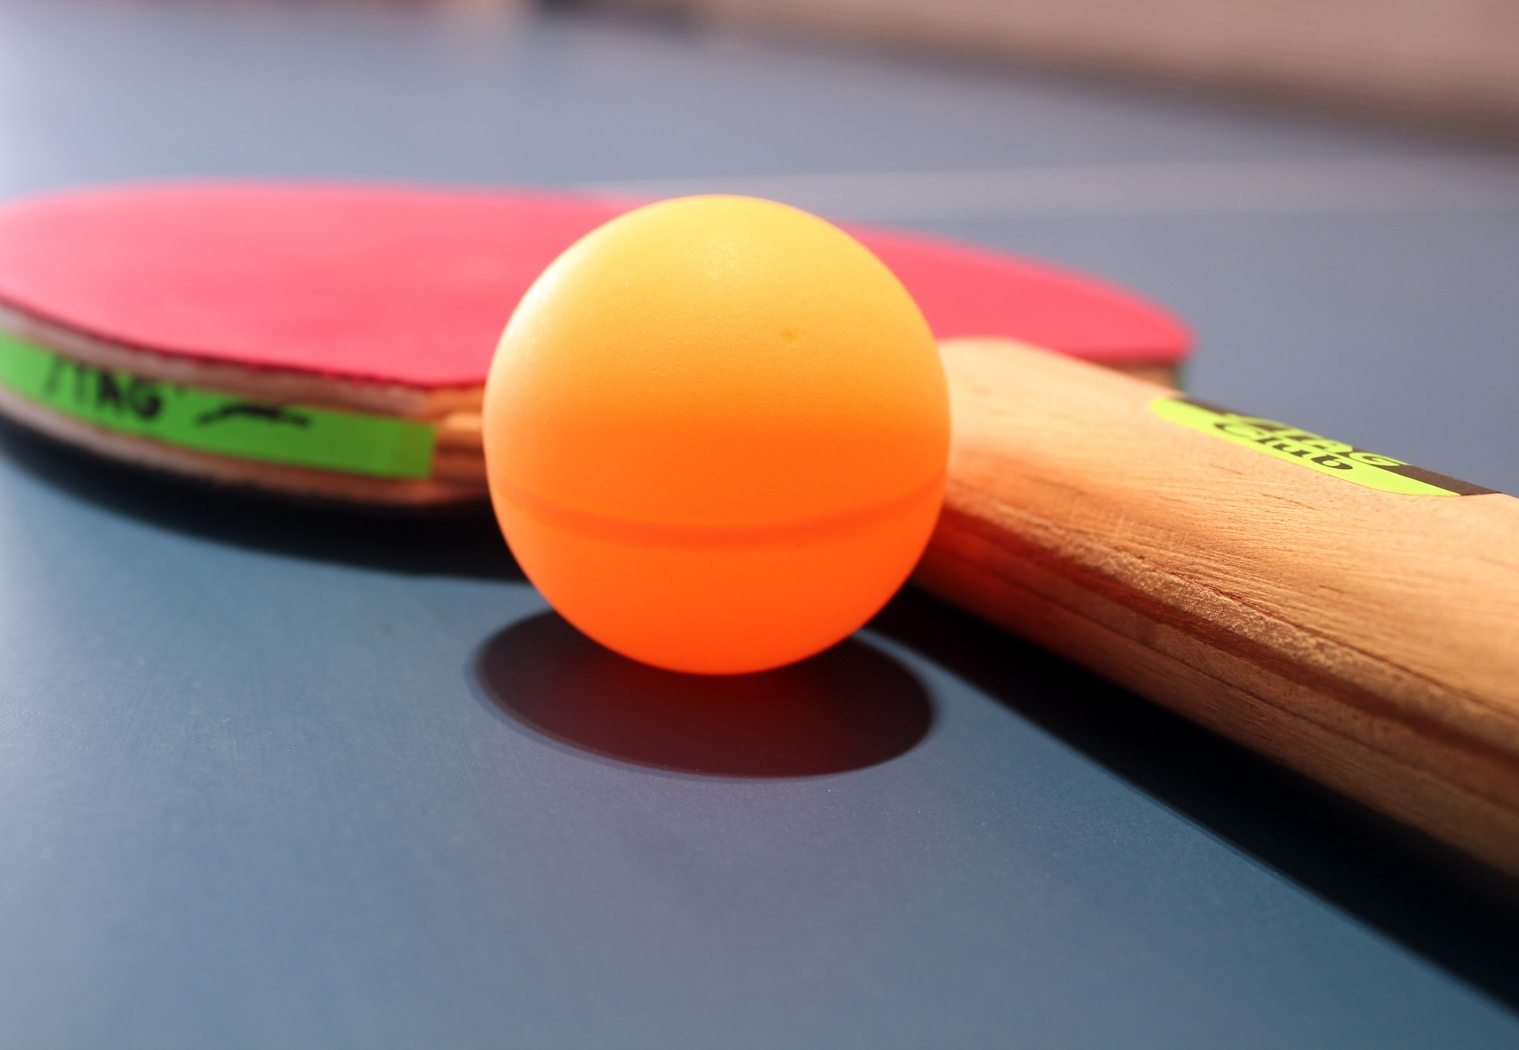 Table-Tennis-Ball-and-Racket